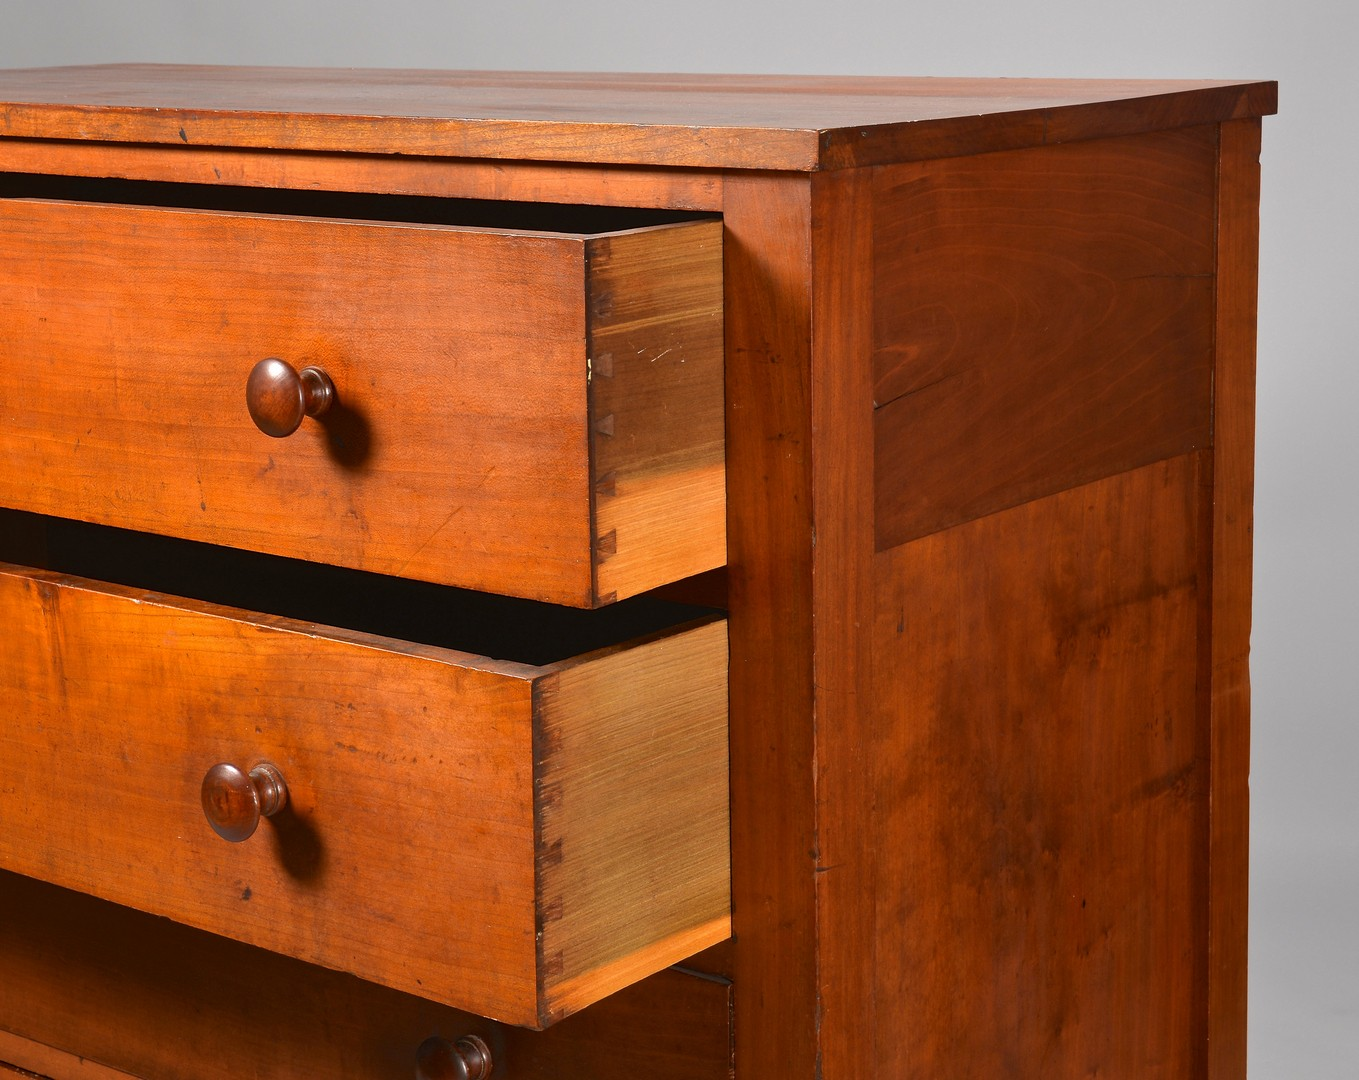 Unique Lot 301: Kentucky Cherry Chest of Drawers, poss. Shaker EQ58